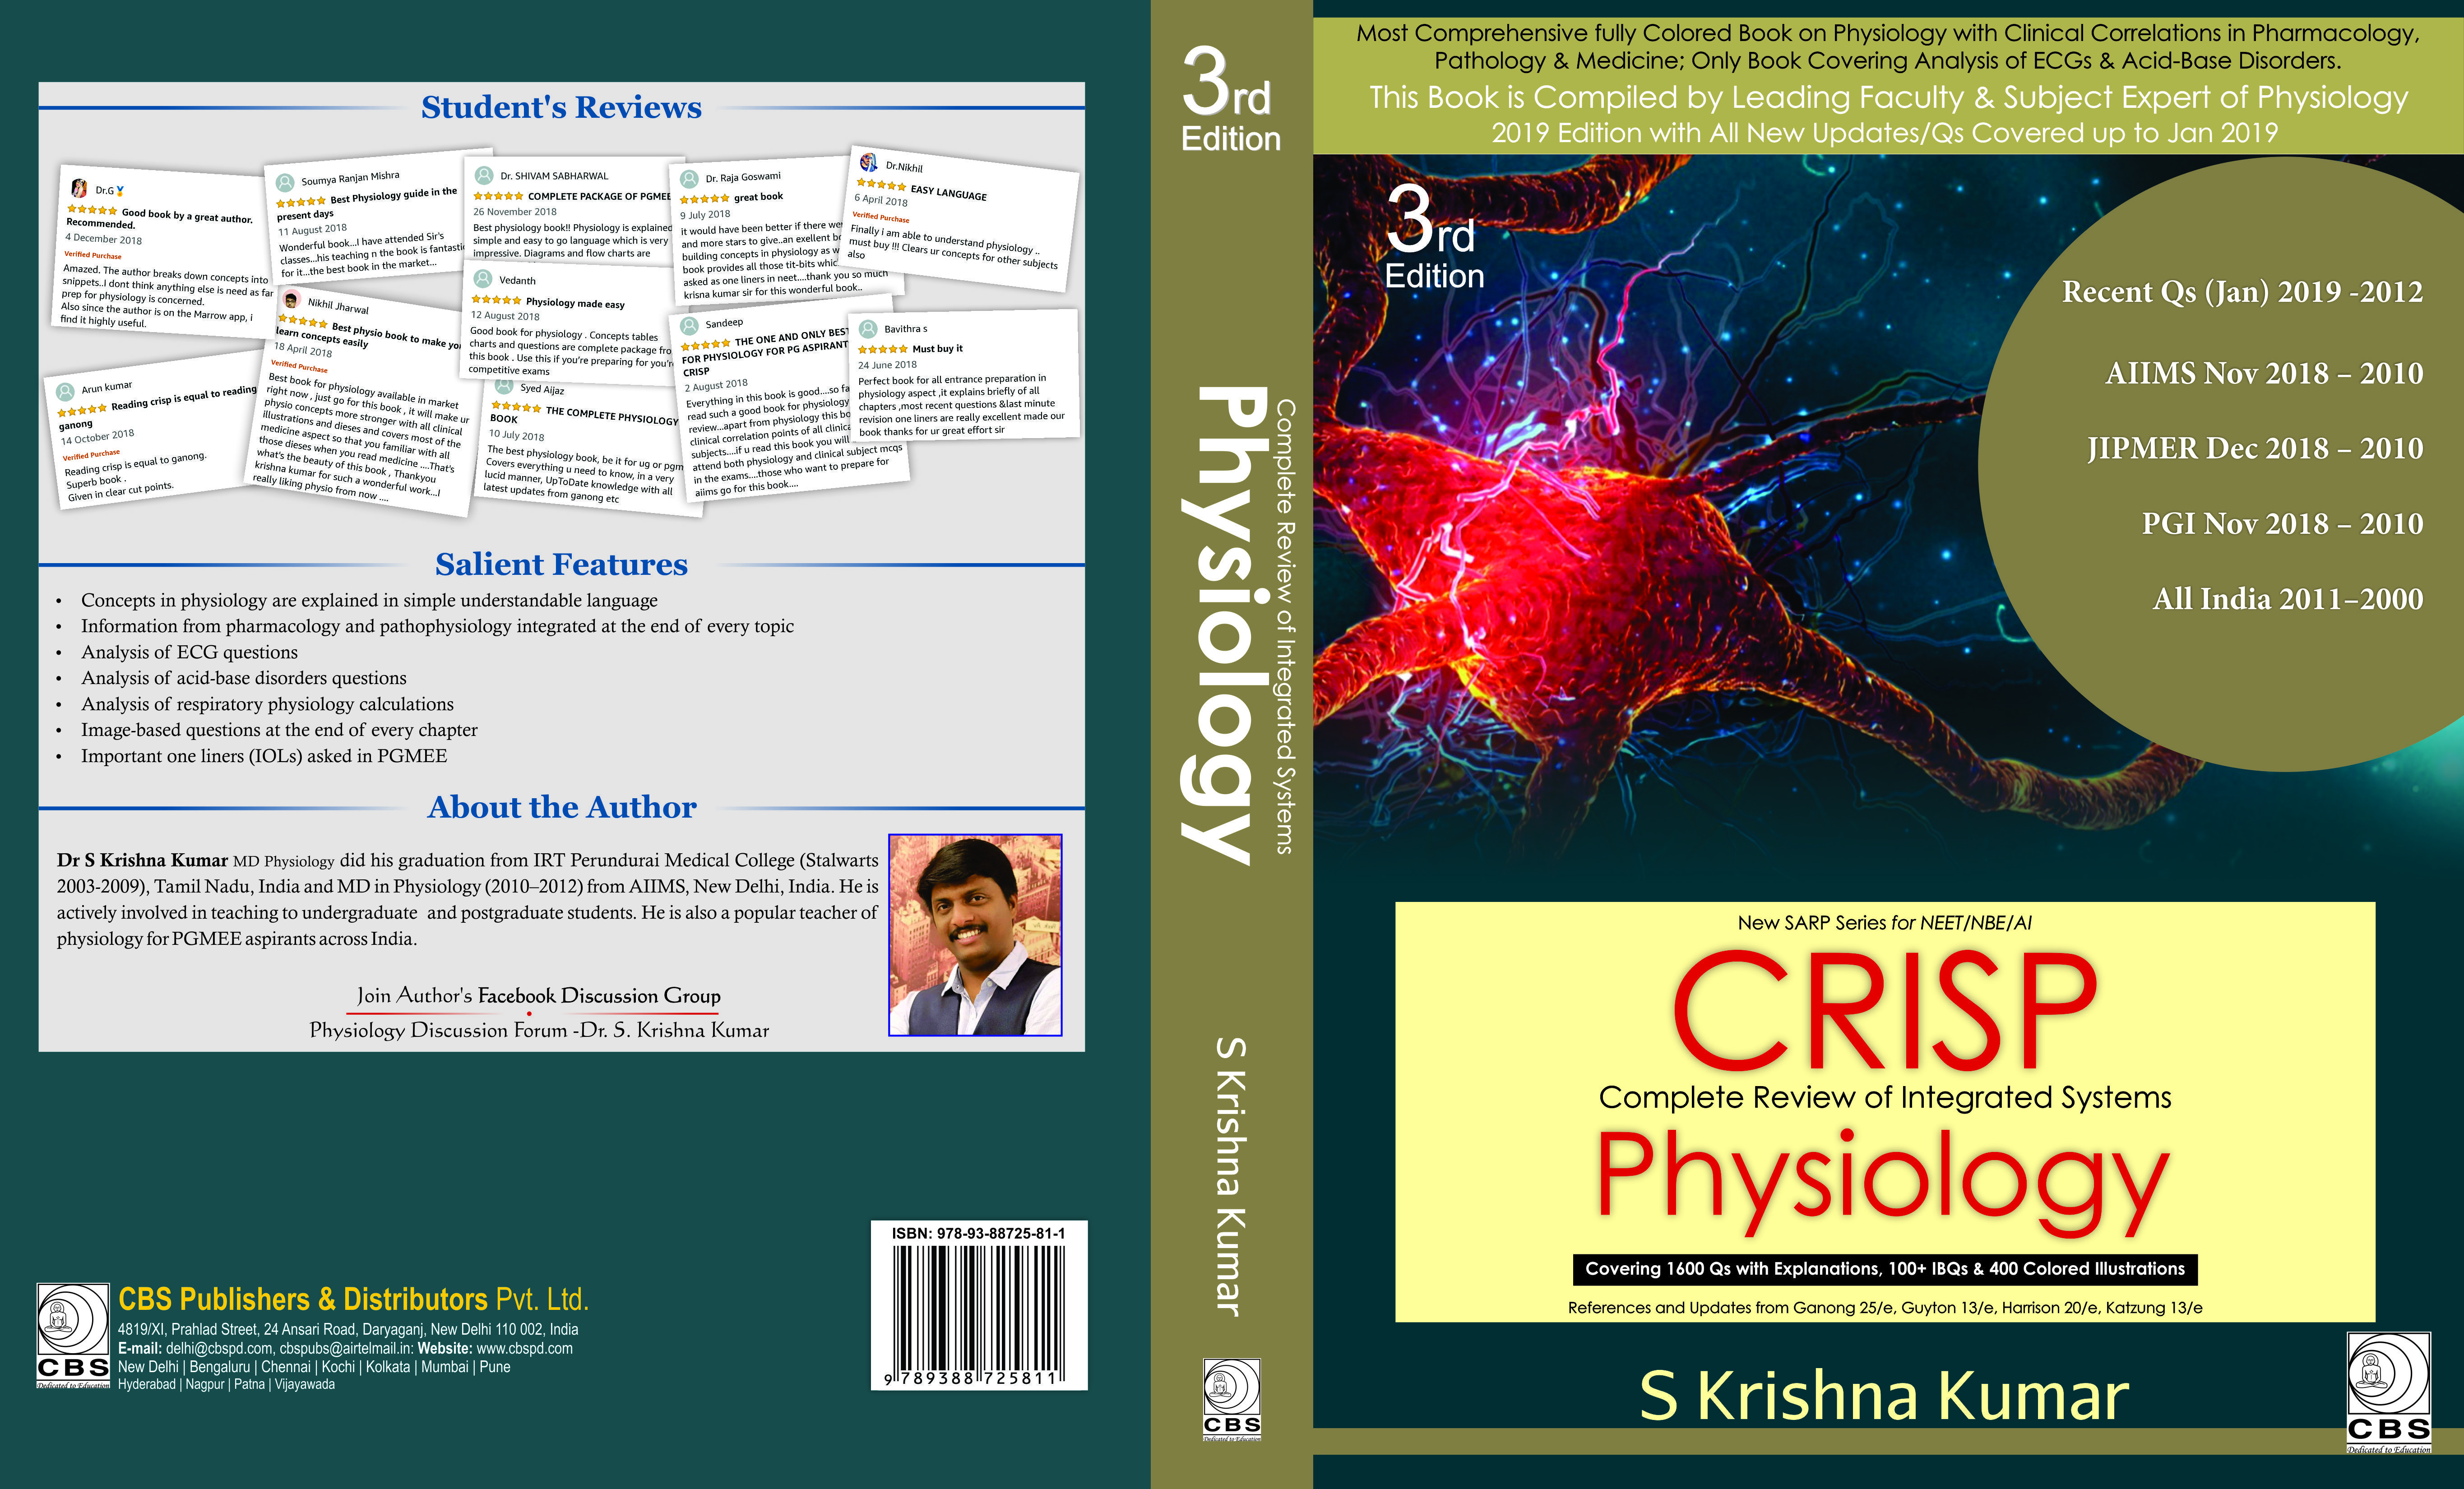 Buy CRISP: Complete Review of Integrated Systems (New SARP